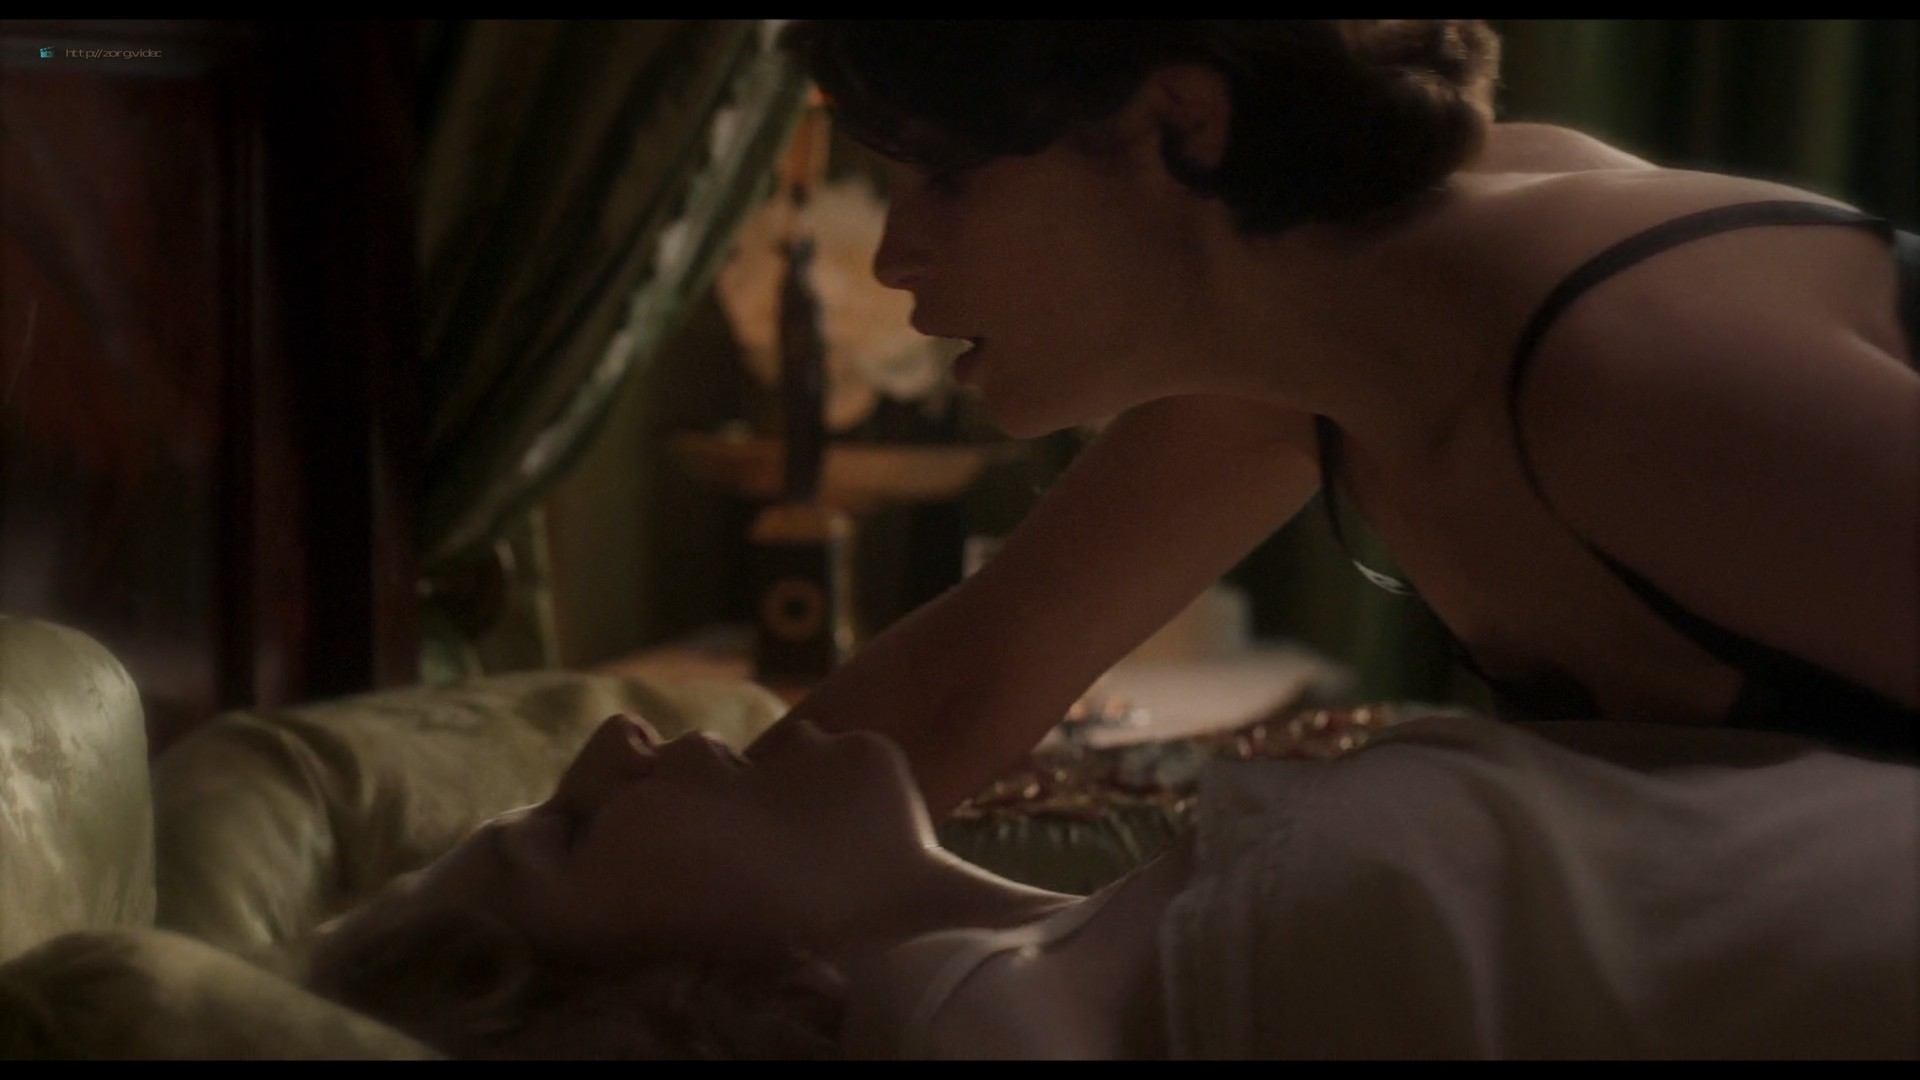 Elizabeth Debicki nude and Gemma Arterton lesbian sex - Vita & Virginia (2018) HD 1080p Web (5)